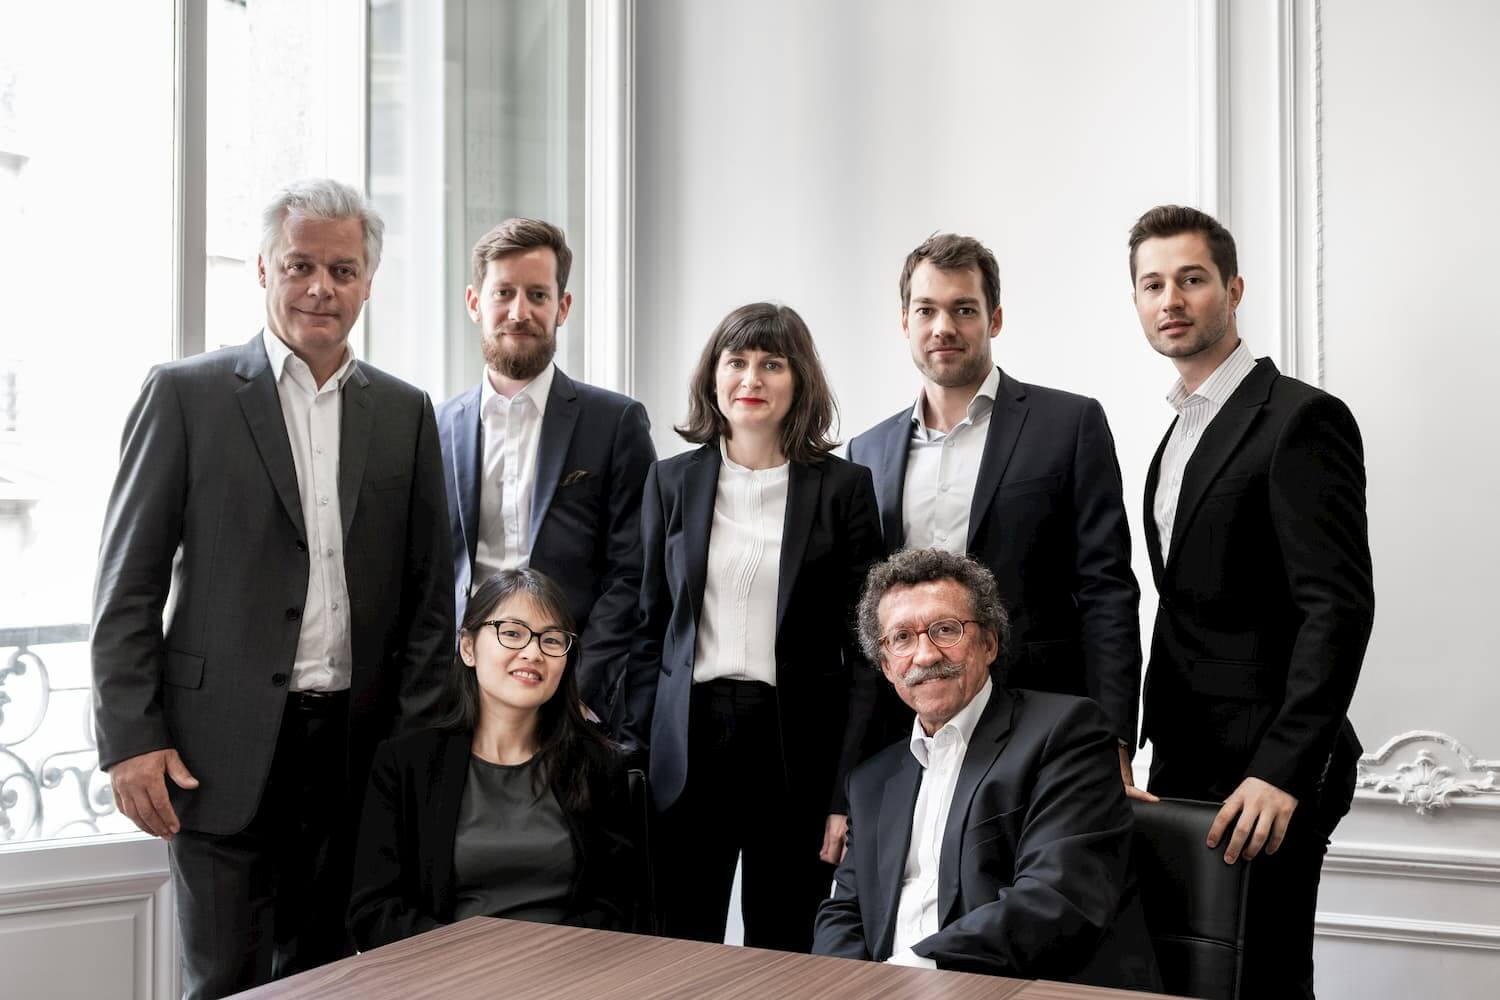 photographie corporate portrait entreprise banque d'images Designatic Palmer Consulting Paris